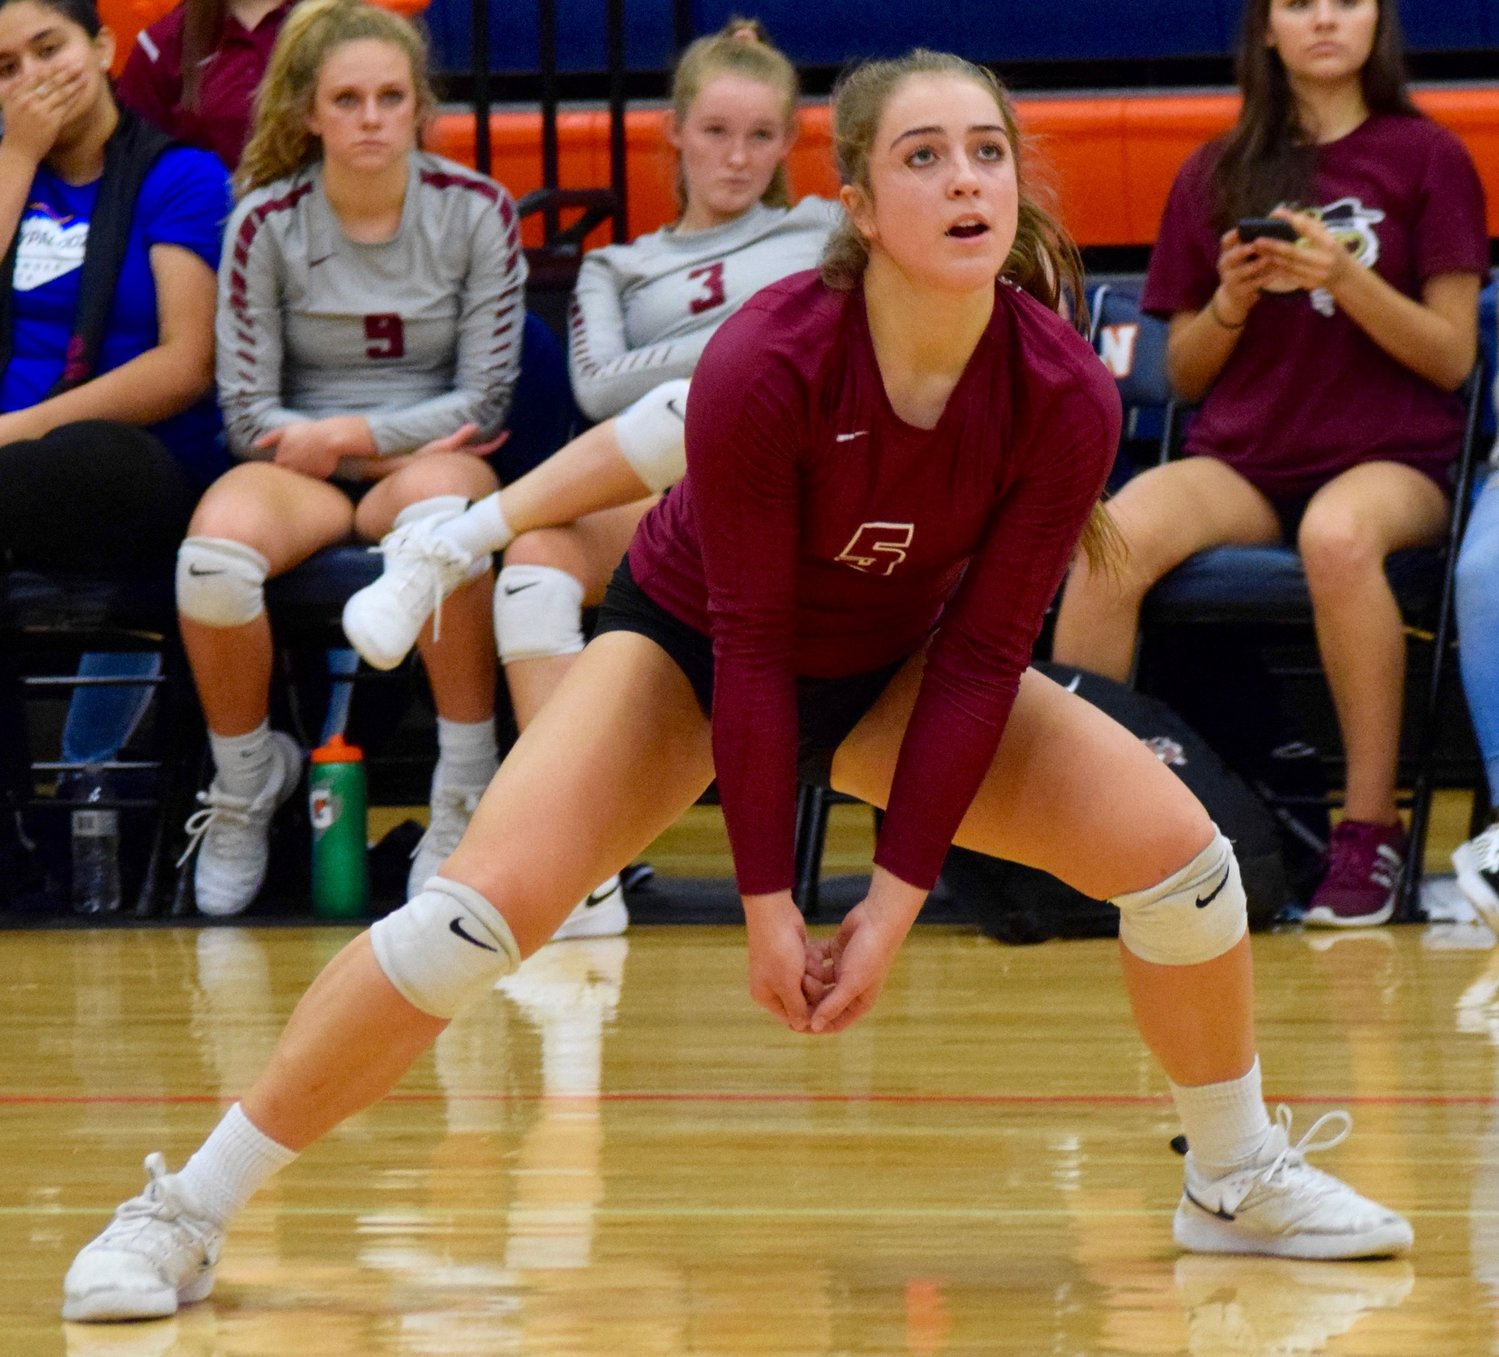 Reilly Heinrich and Rouse swept Glenn 3-0 (25-11, 25-10, 25-19) to stay undefeated in district play and push their winning streak to 10 games.